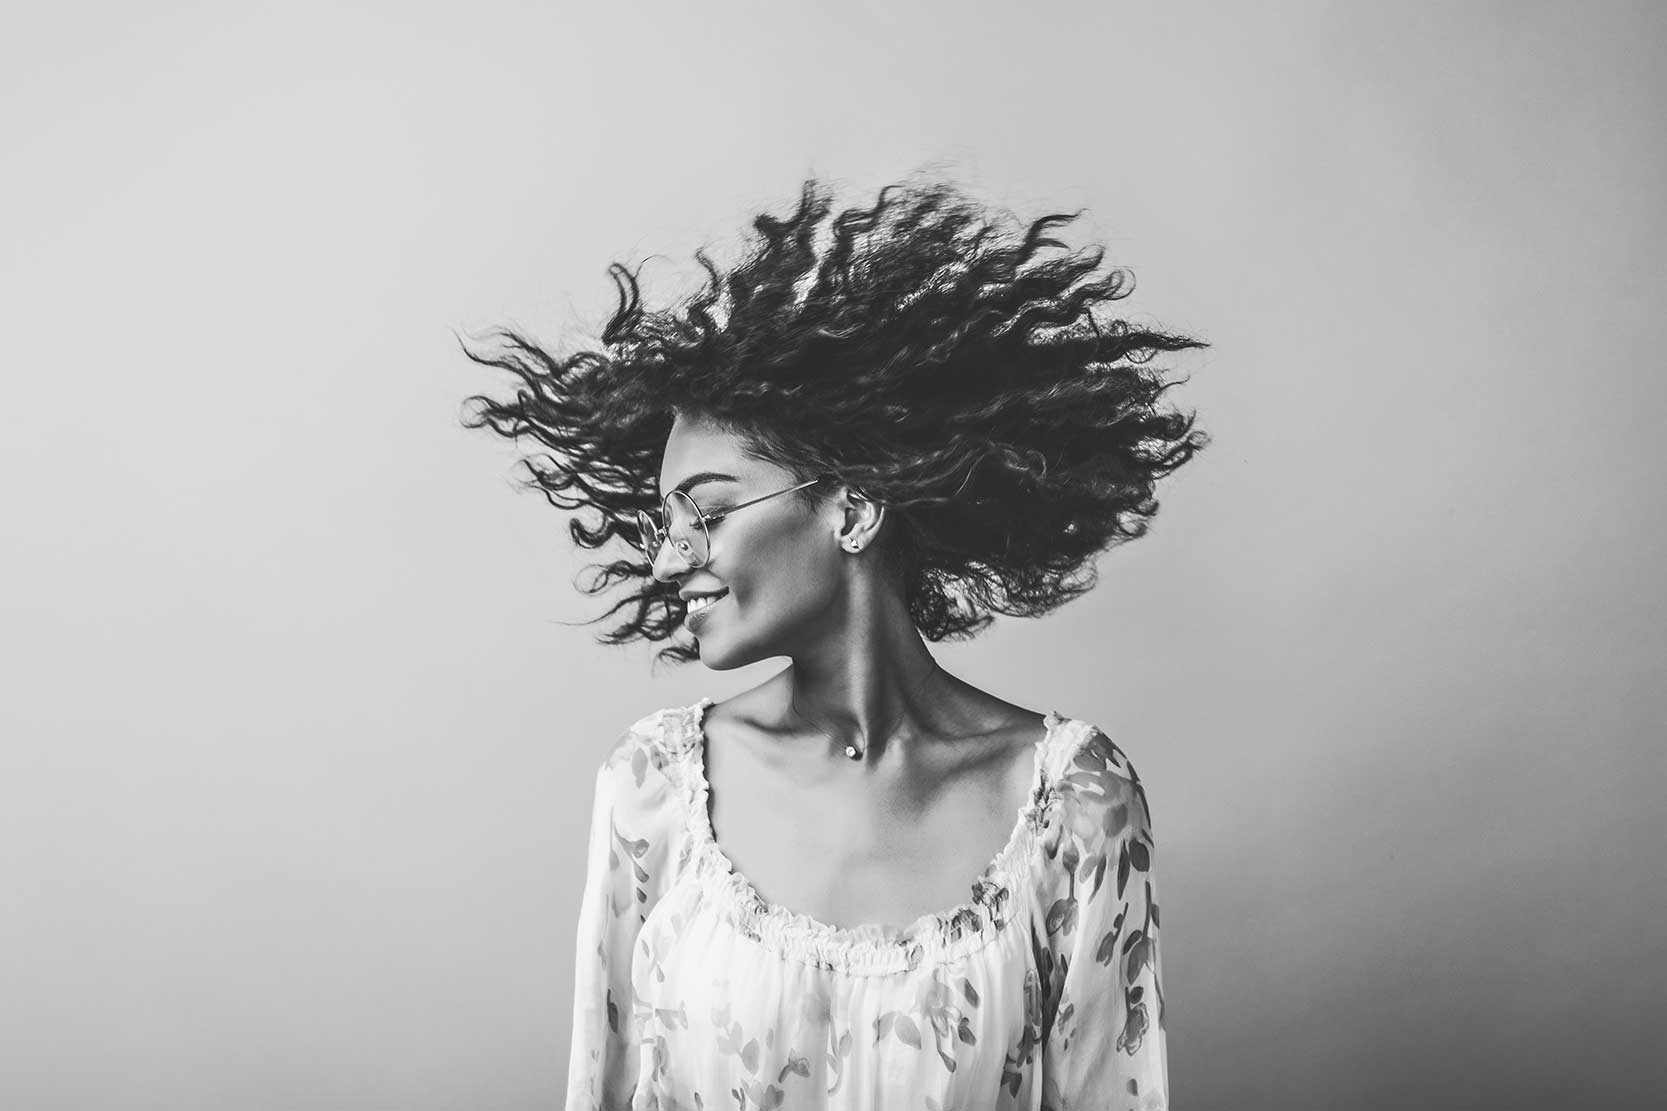 Portrait of a woman, hair blowing through the wind. Black and white preset.